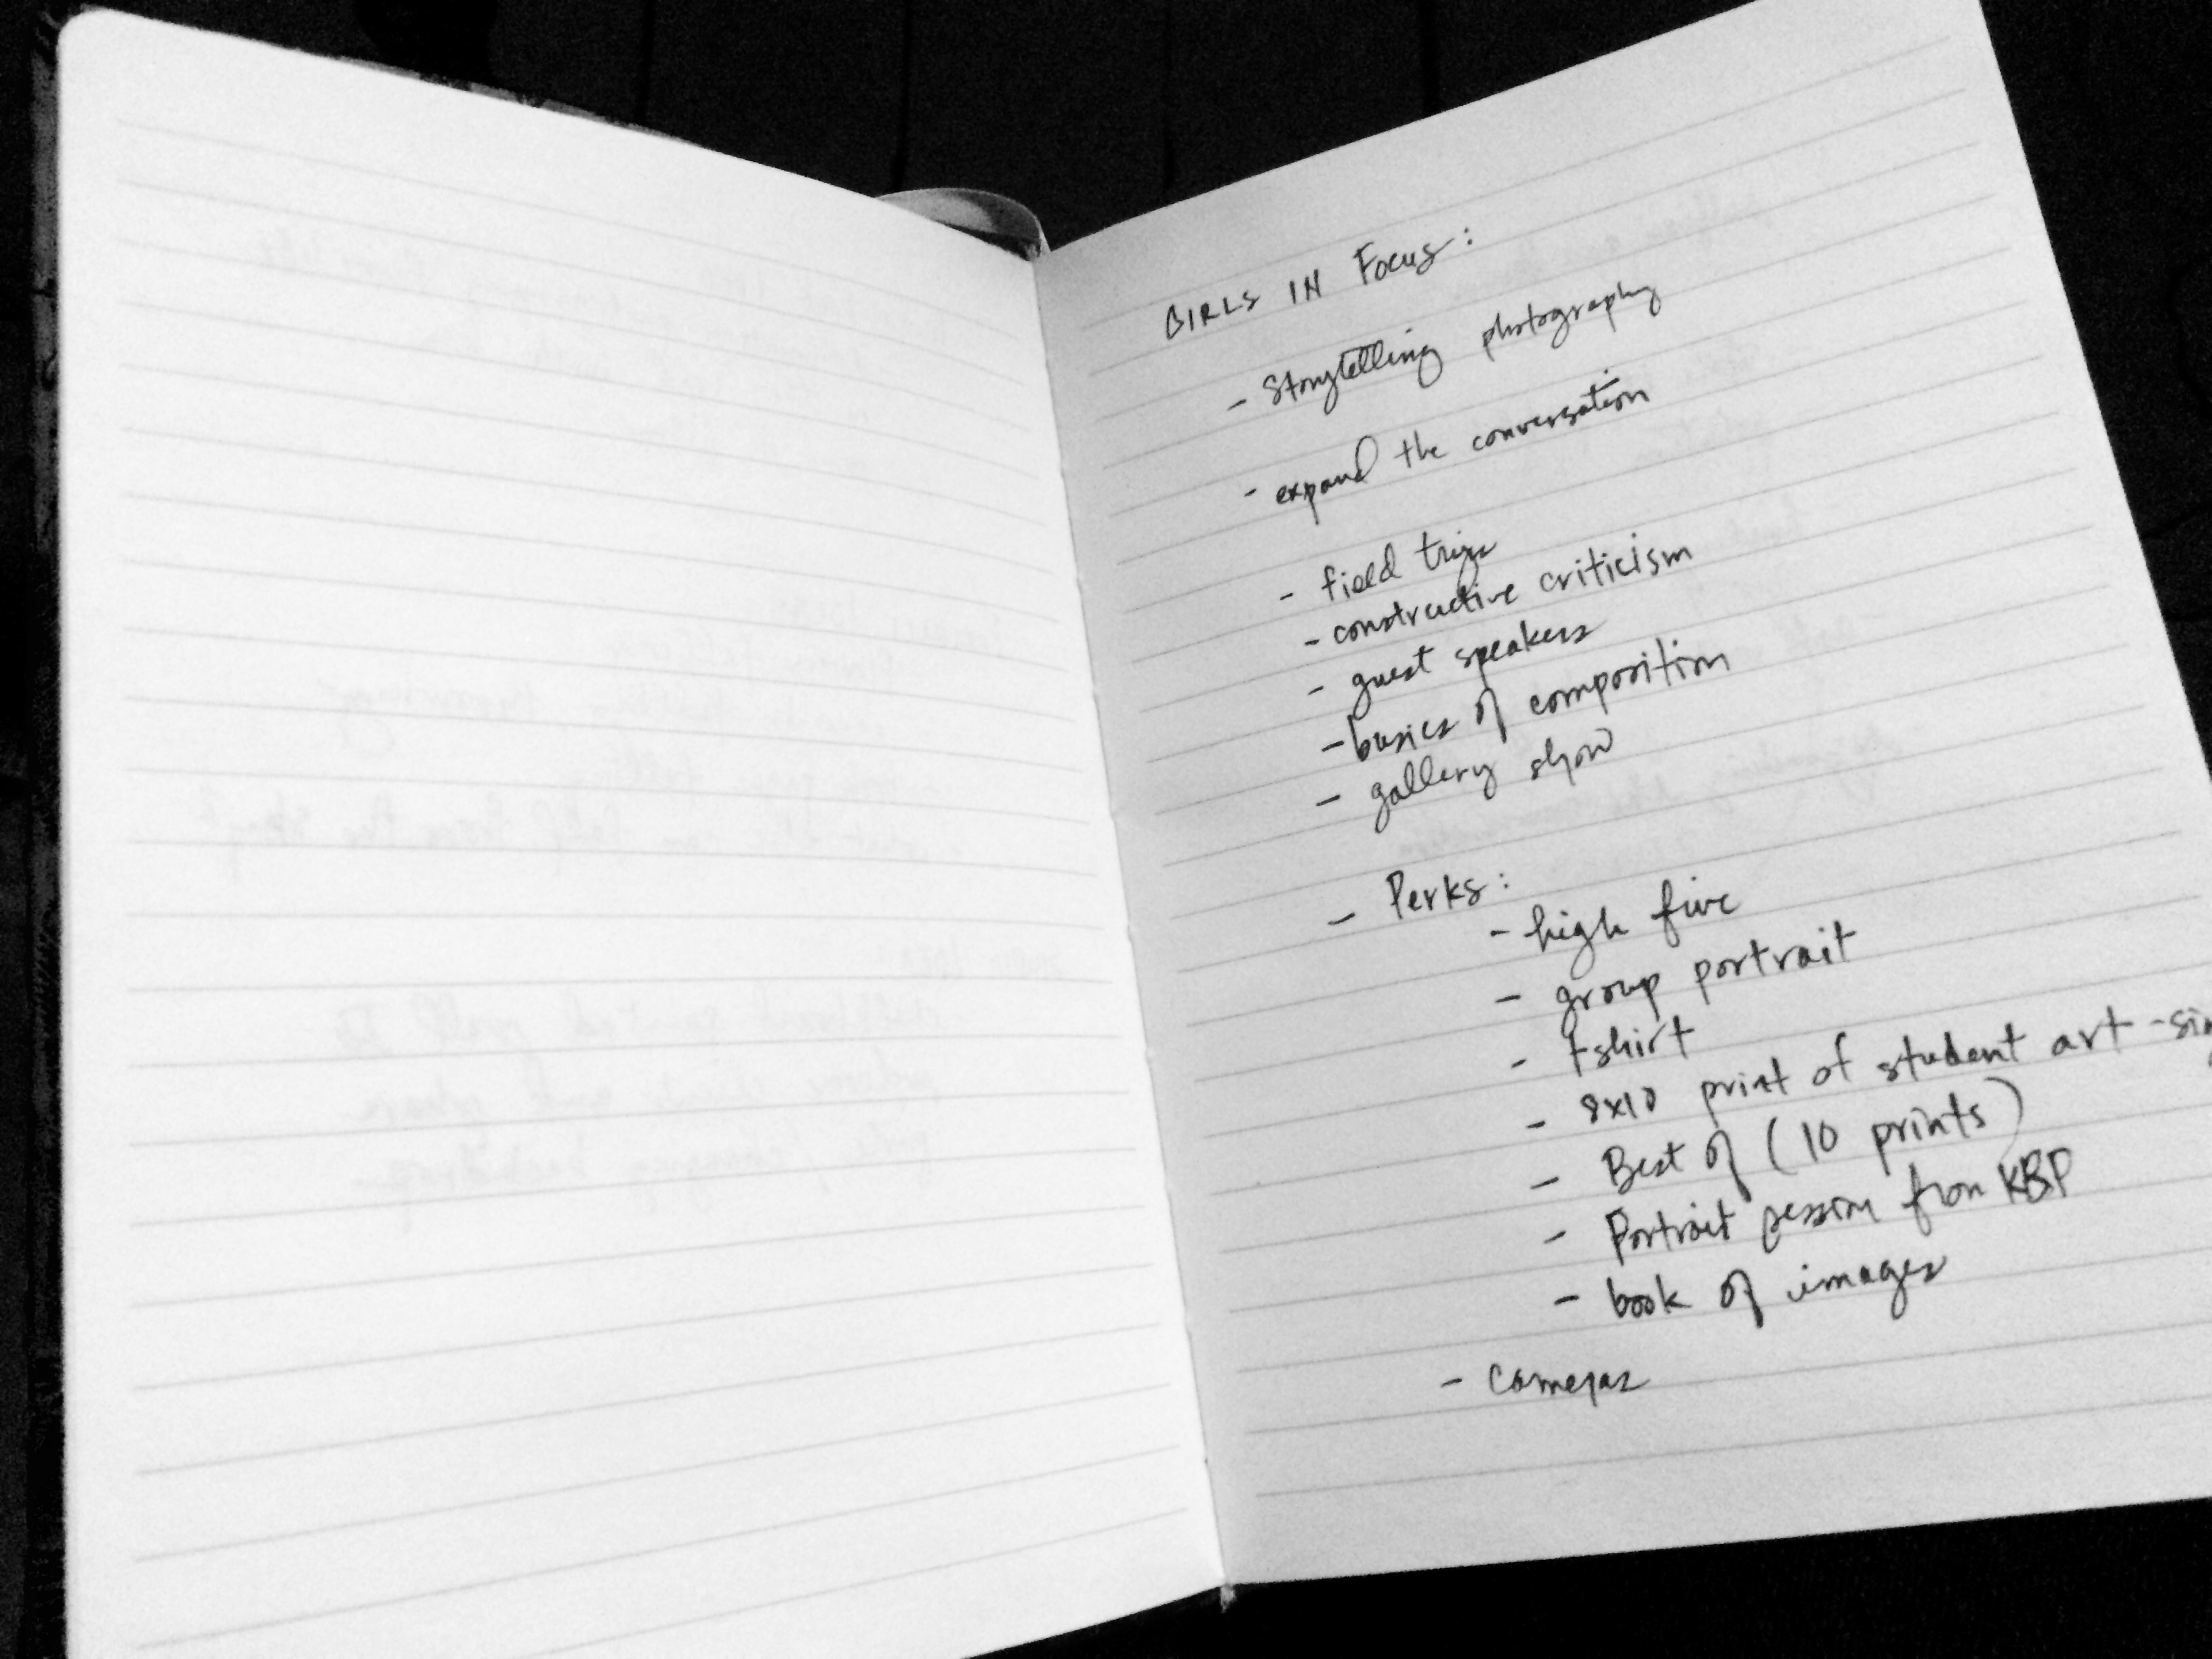 Where it all began: a few notes in a journal